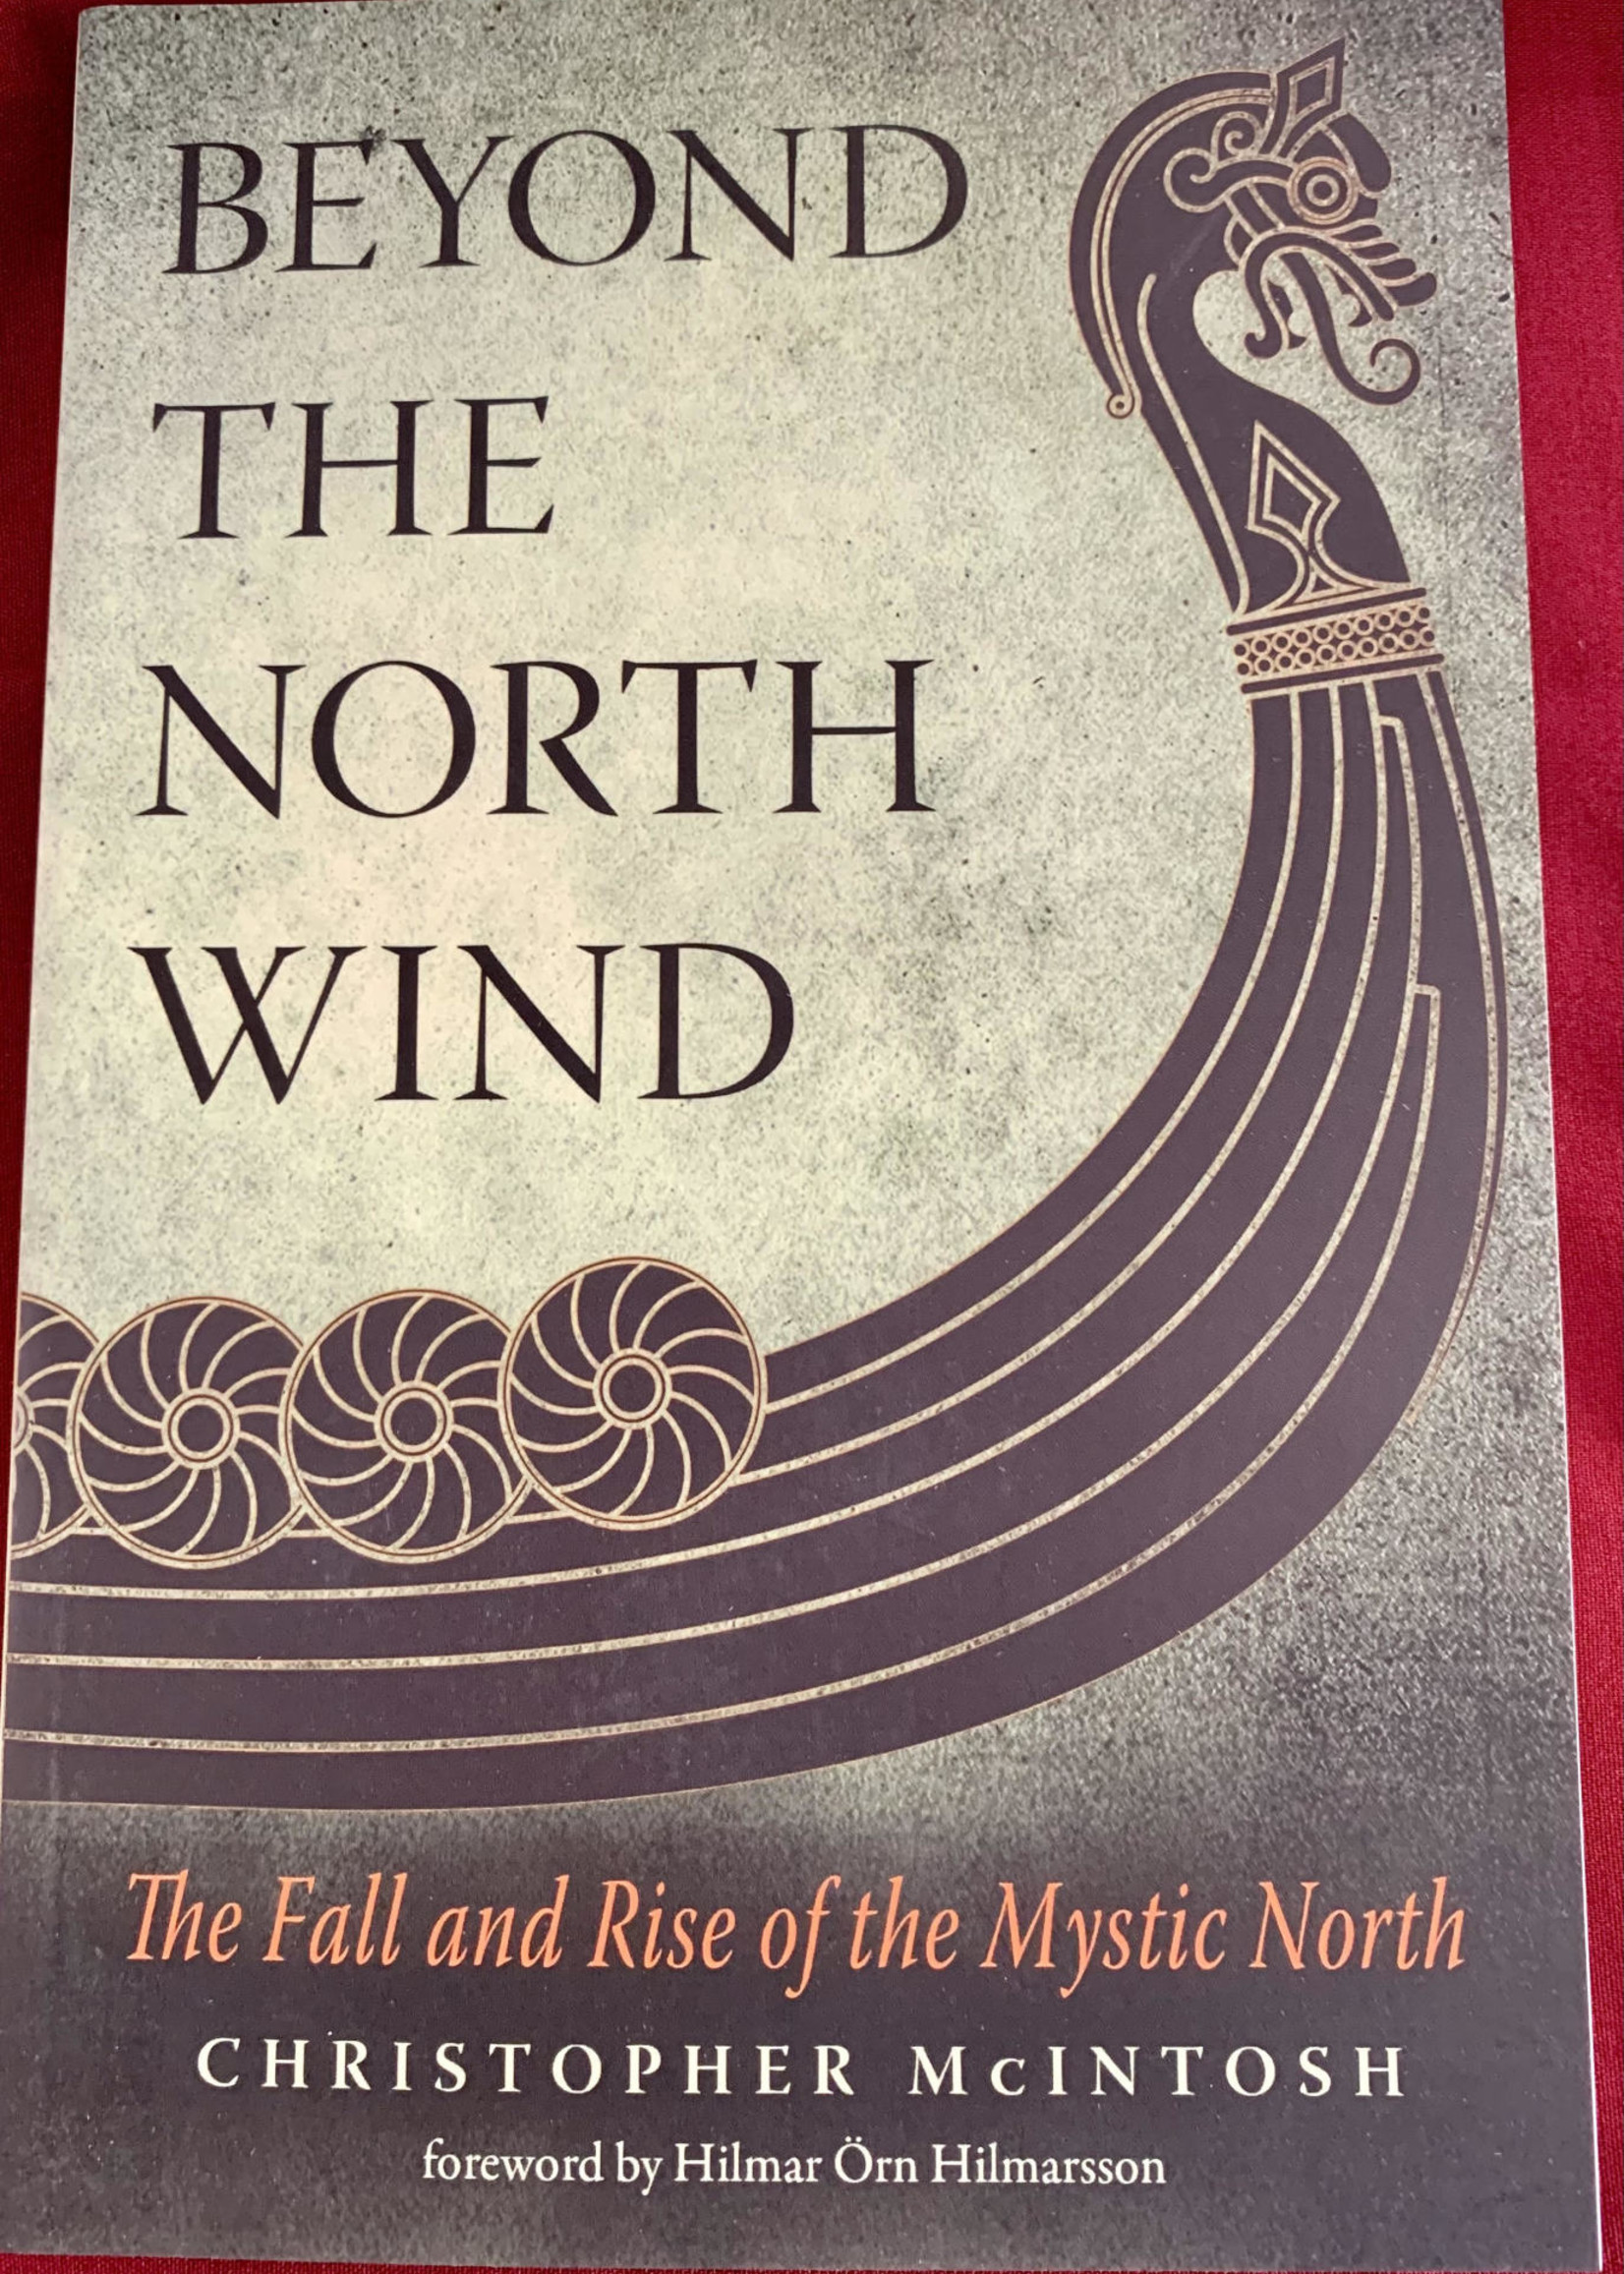 Beyond the North Wind The Fall and Rise of the Mystic North - Christopher McIntosh, Foreword by Hilmar Örn Hilmarsson